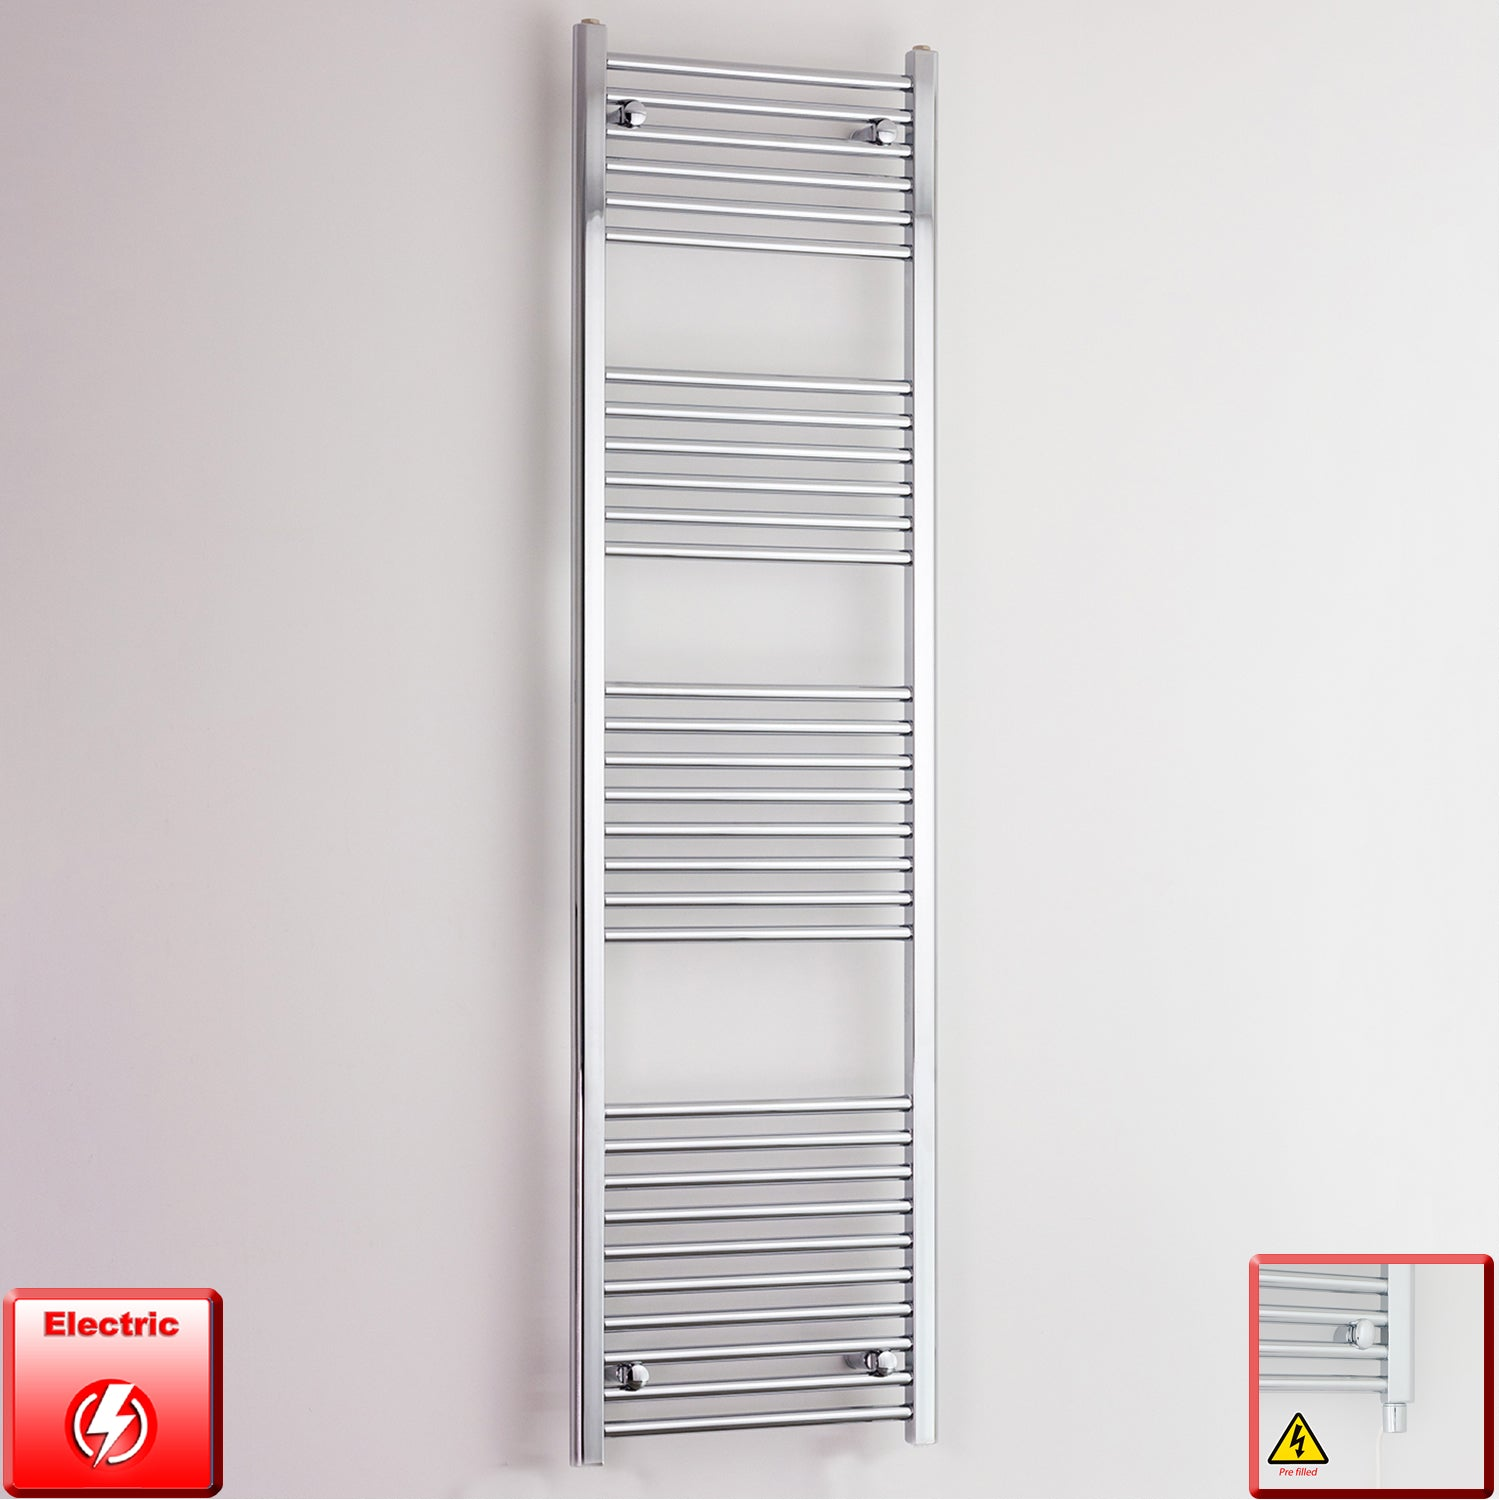 600mm Wide 1800mm High Pre-Filled Chrome Electric Towel Rail Radiator With Single Heat Element